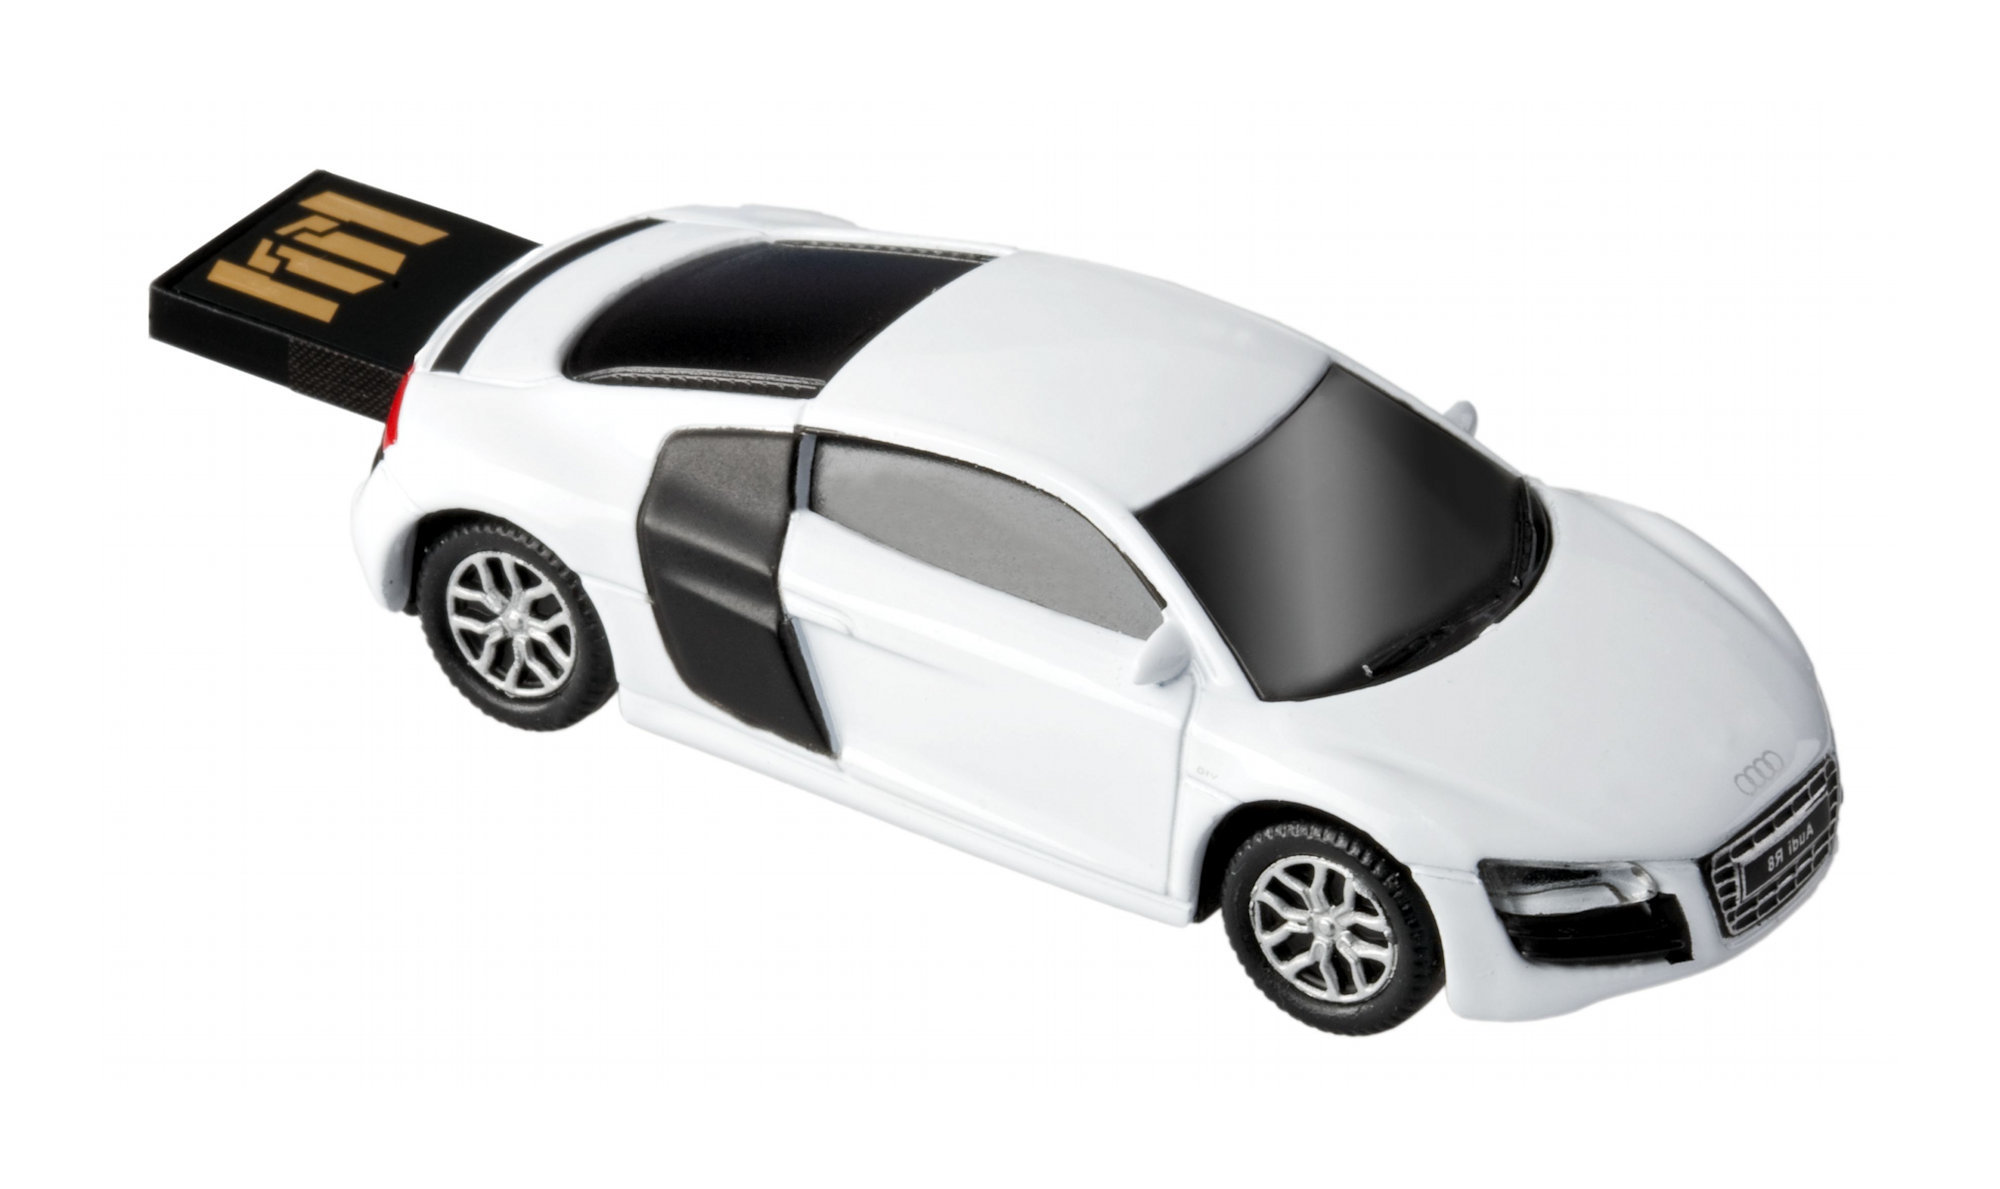 autodrive audi r8 8 gb usb memory stick flash pen drive. Black Bedroom Furniture Sets. Home Design Ideas